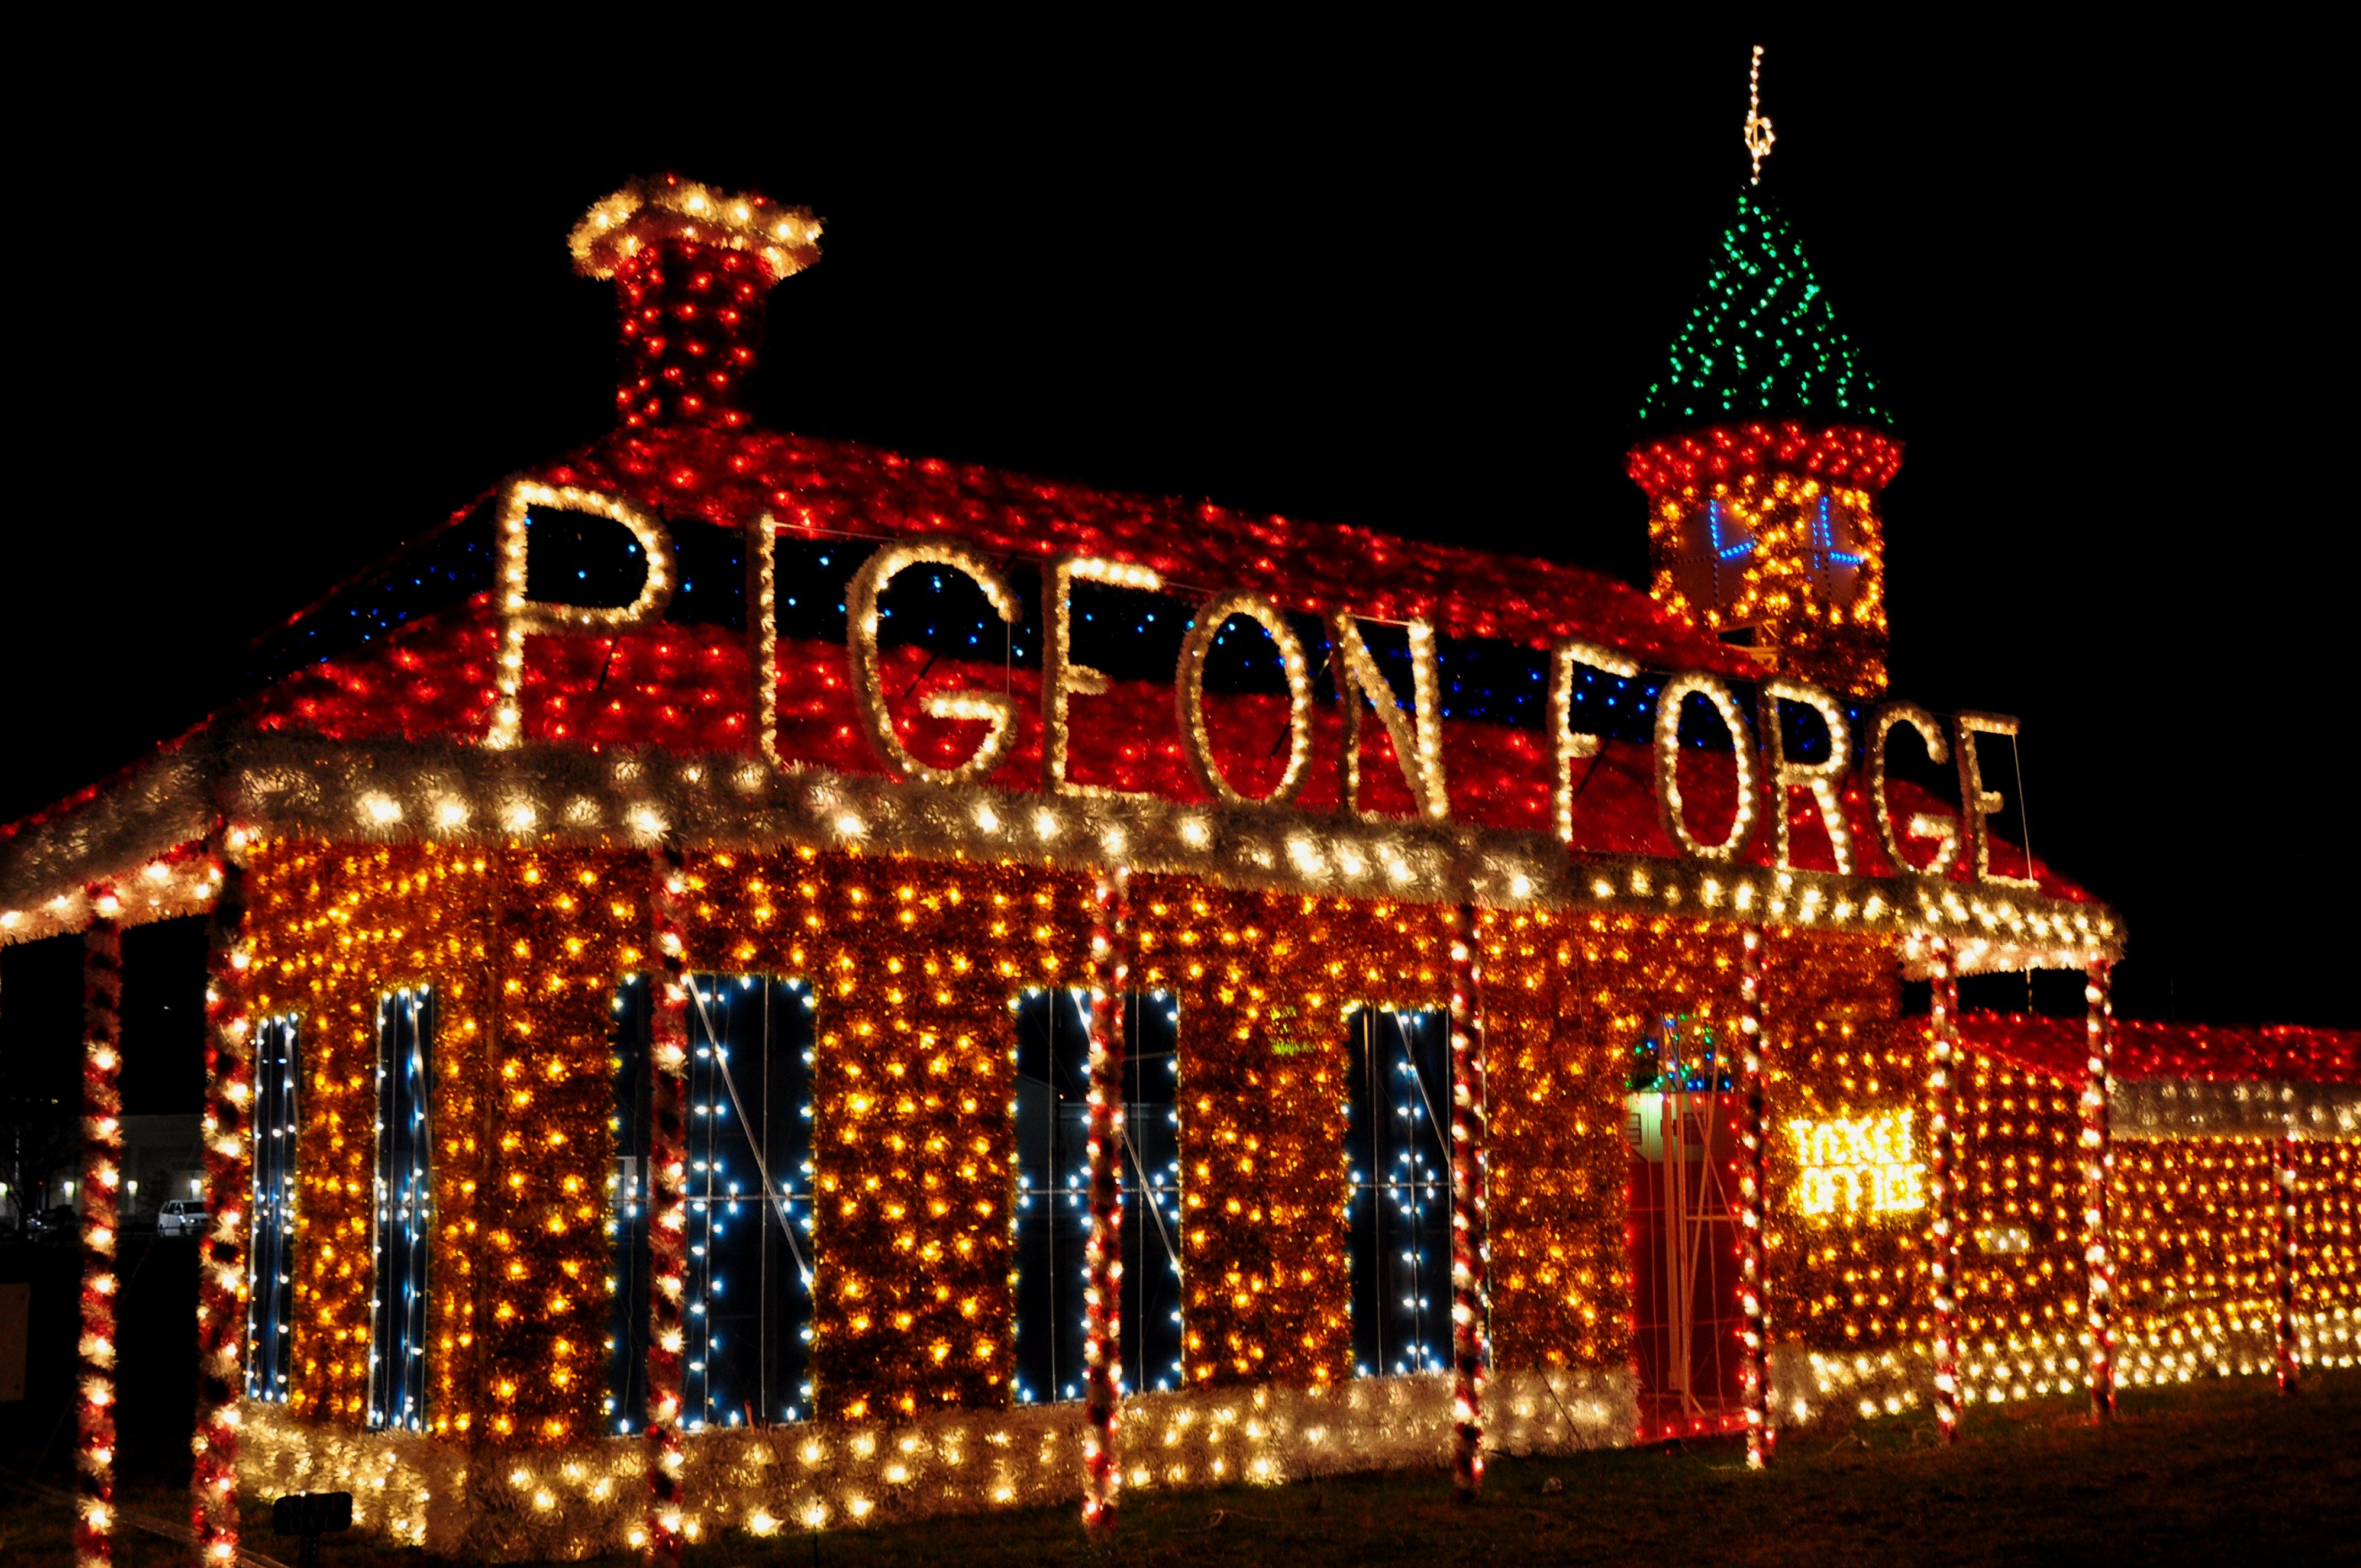 Cabins in gatlinburg tn decorated for christmas - Luxury Vacation Cabin And Home Rentals In Pigeon Forge Gatlinburg Sevierville And Brother S Cove Tennessee Outside Great Smoky Mountains National Park